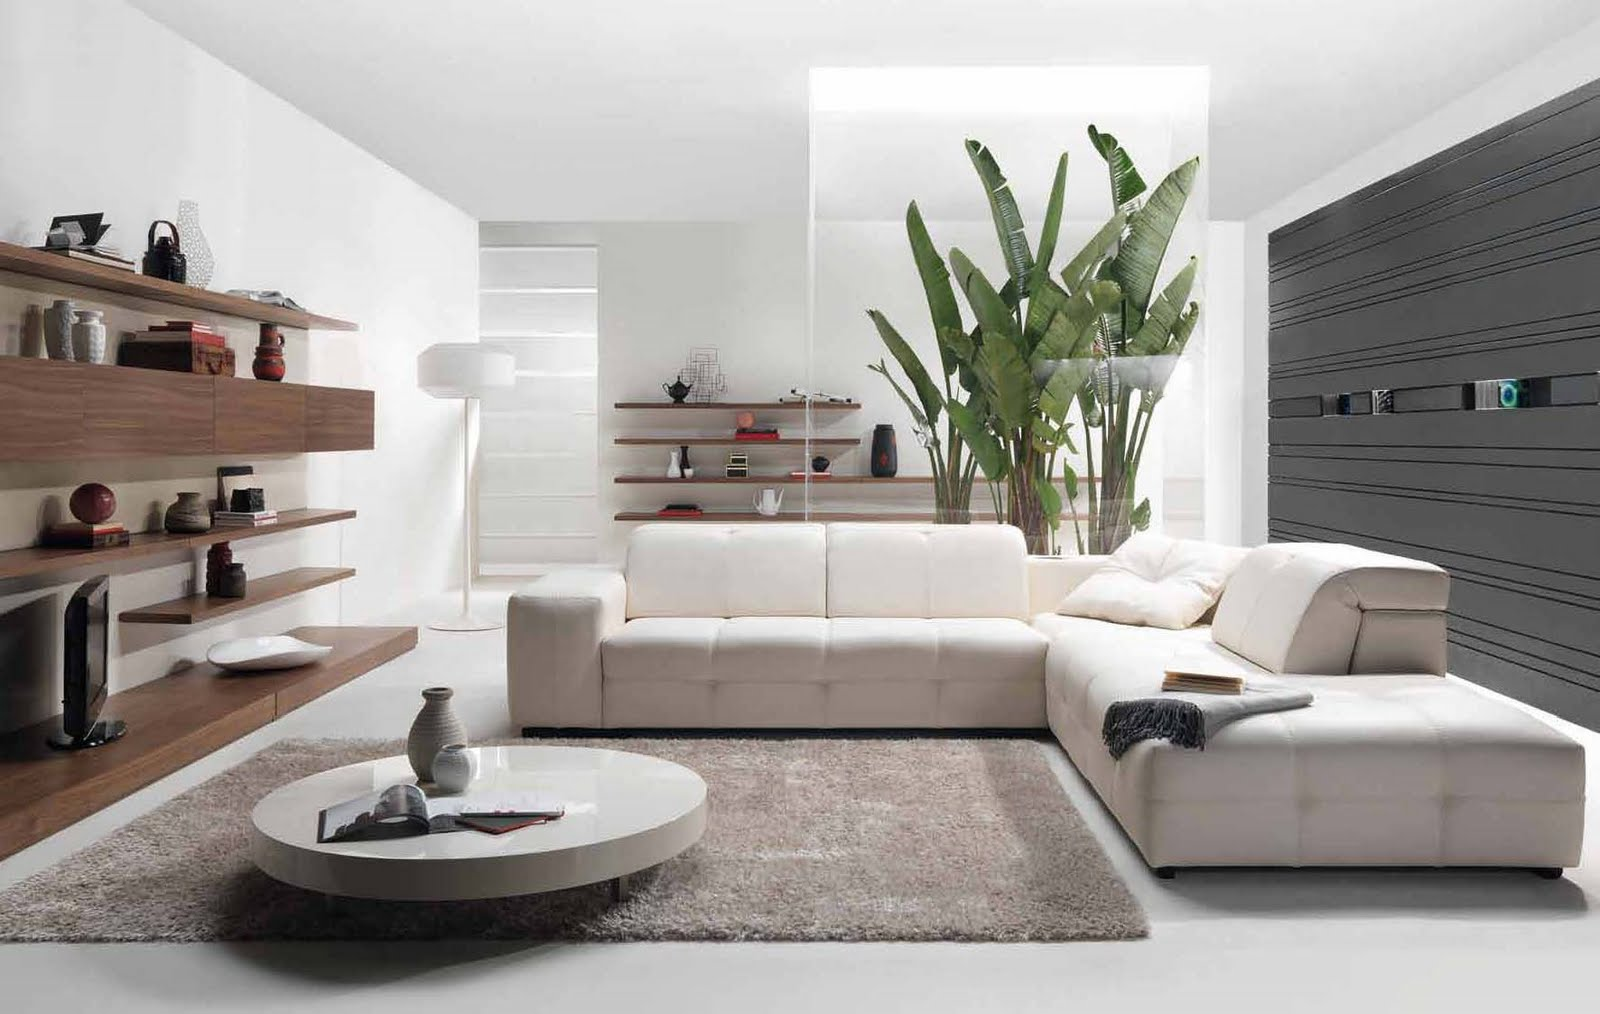 Modern home interior furniture designs diy ideas for Interior design photos living room